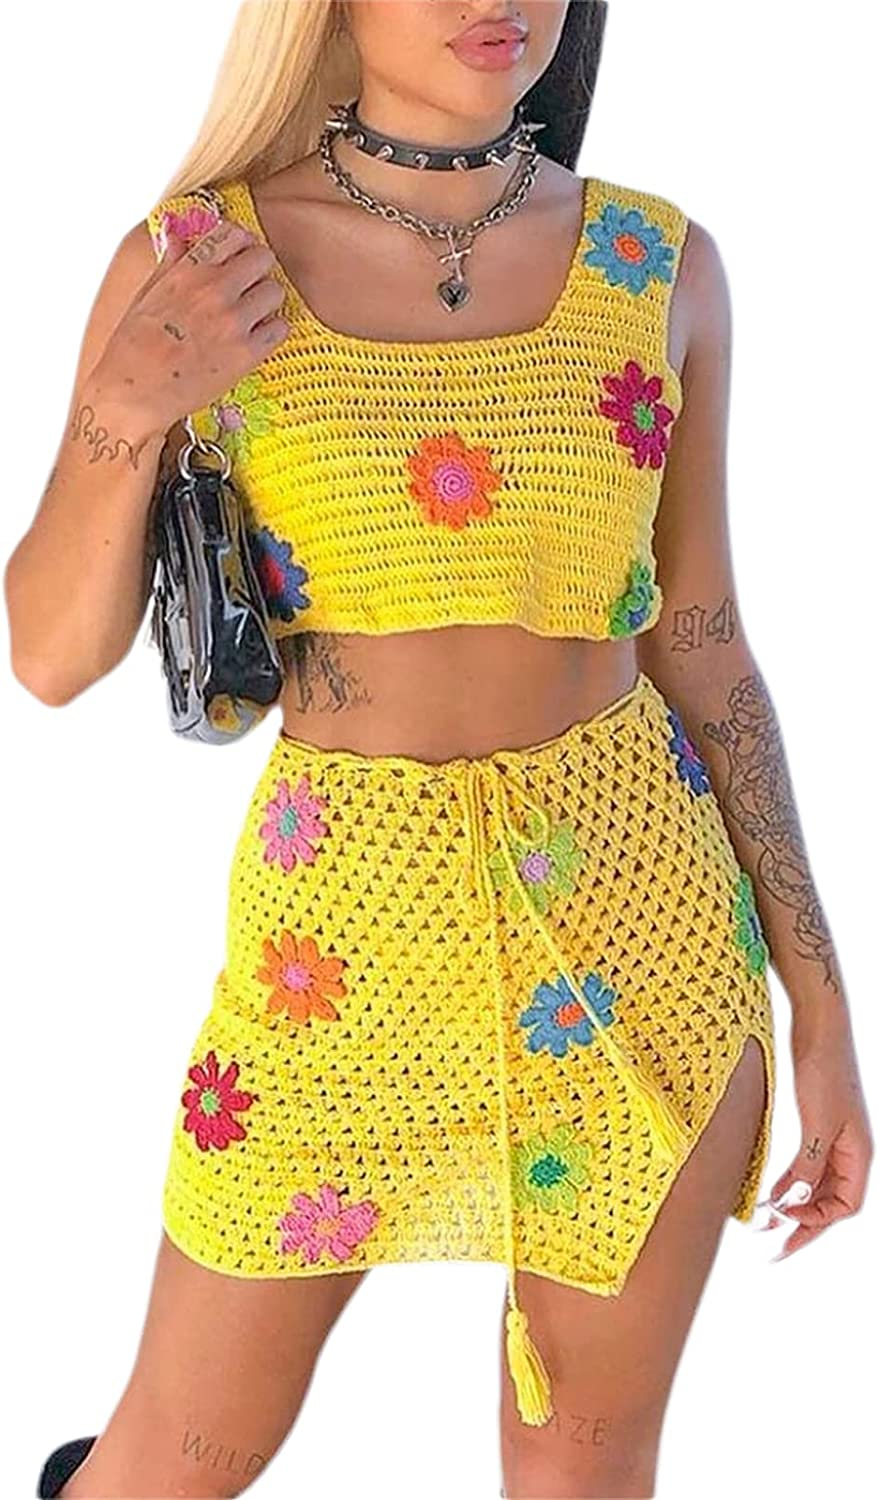 Two-Piece Women Boho Outfits Set Sleeveless S Floral Knitted Opening large release sale Y2k Deluxe